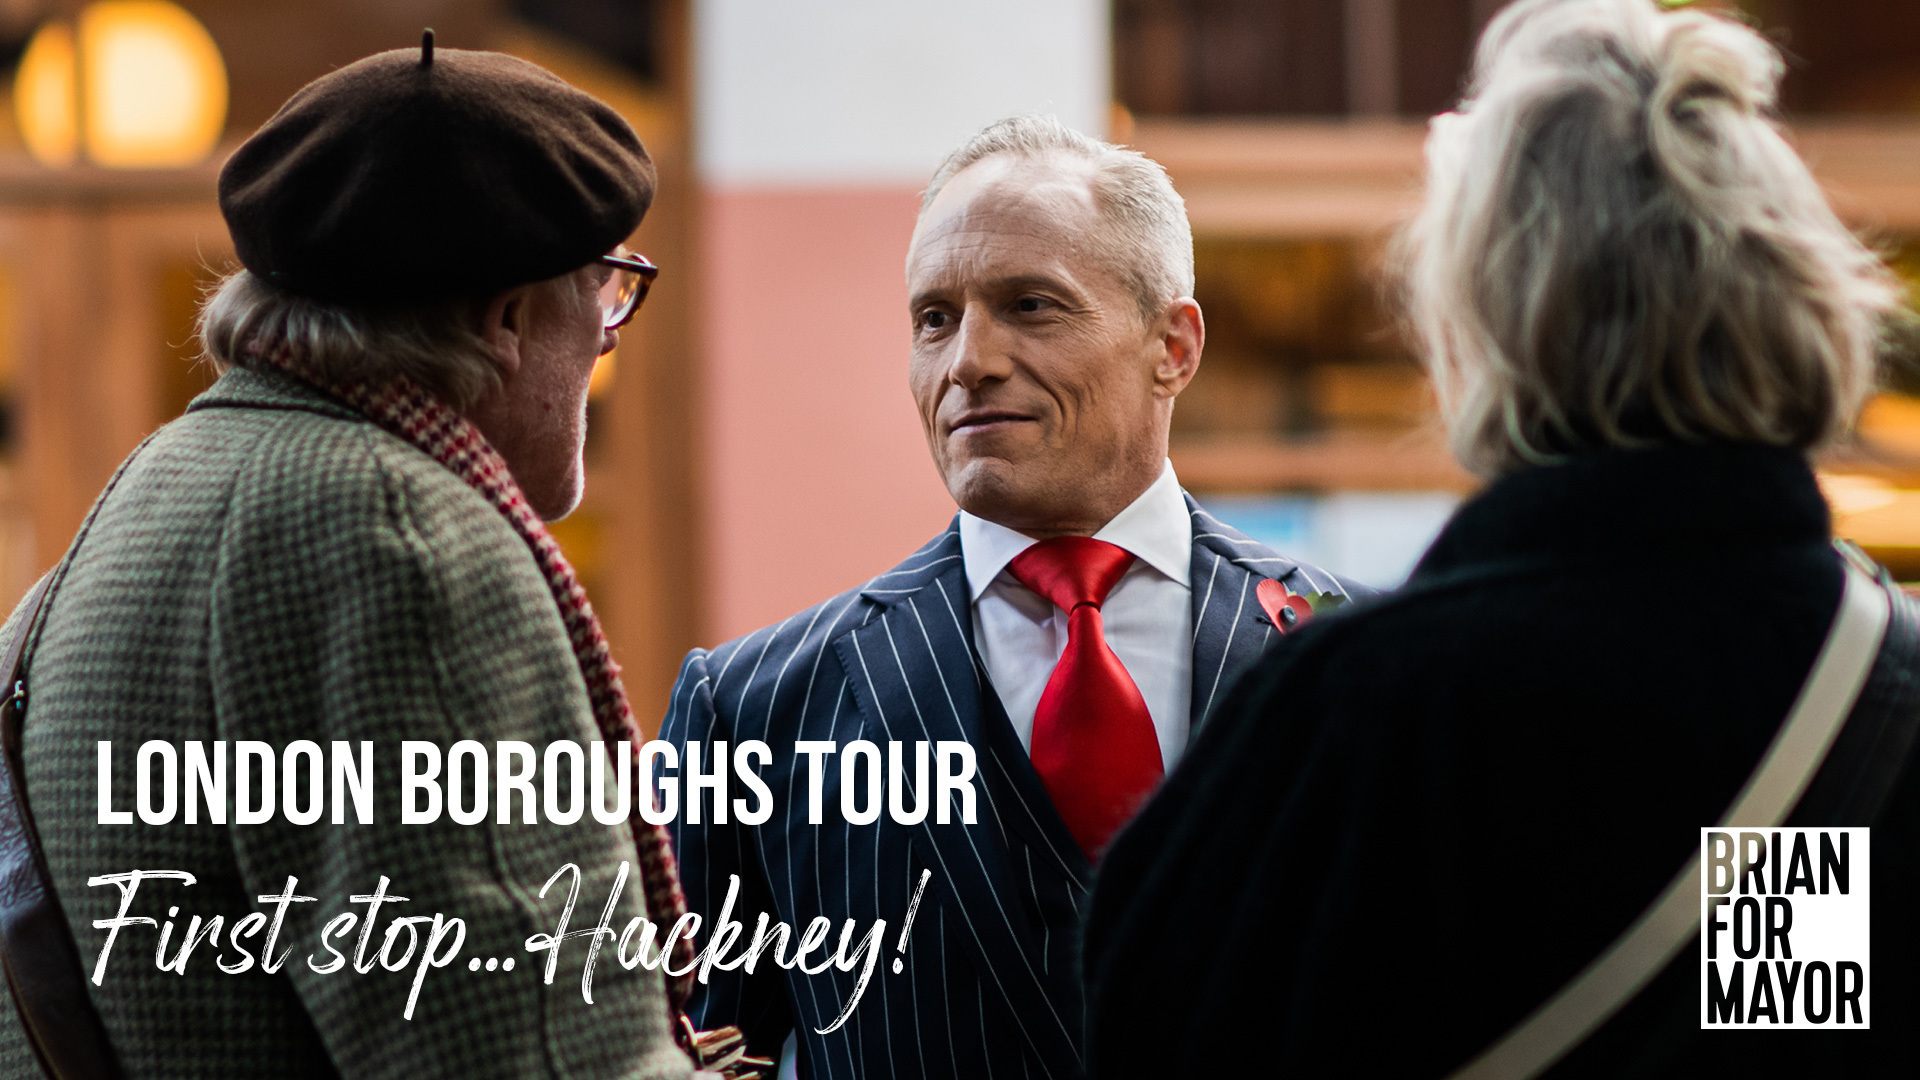 The Brian For Mayor London Boroughs Tour - How WE Can Make London a World-Class City Once Again